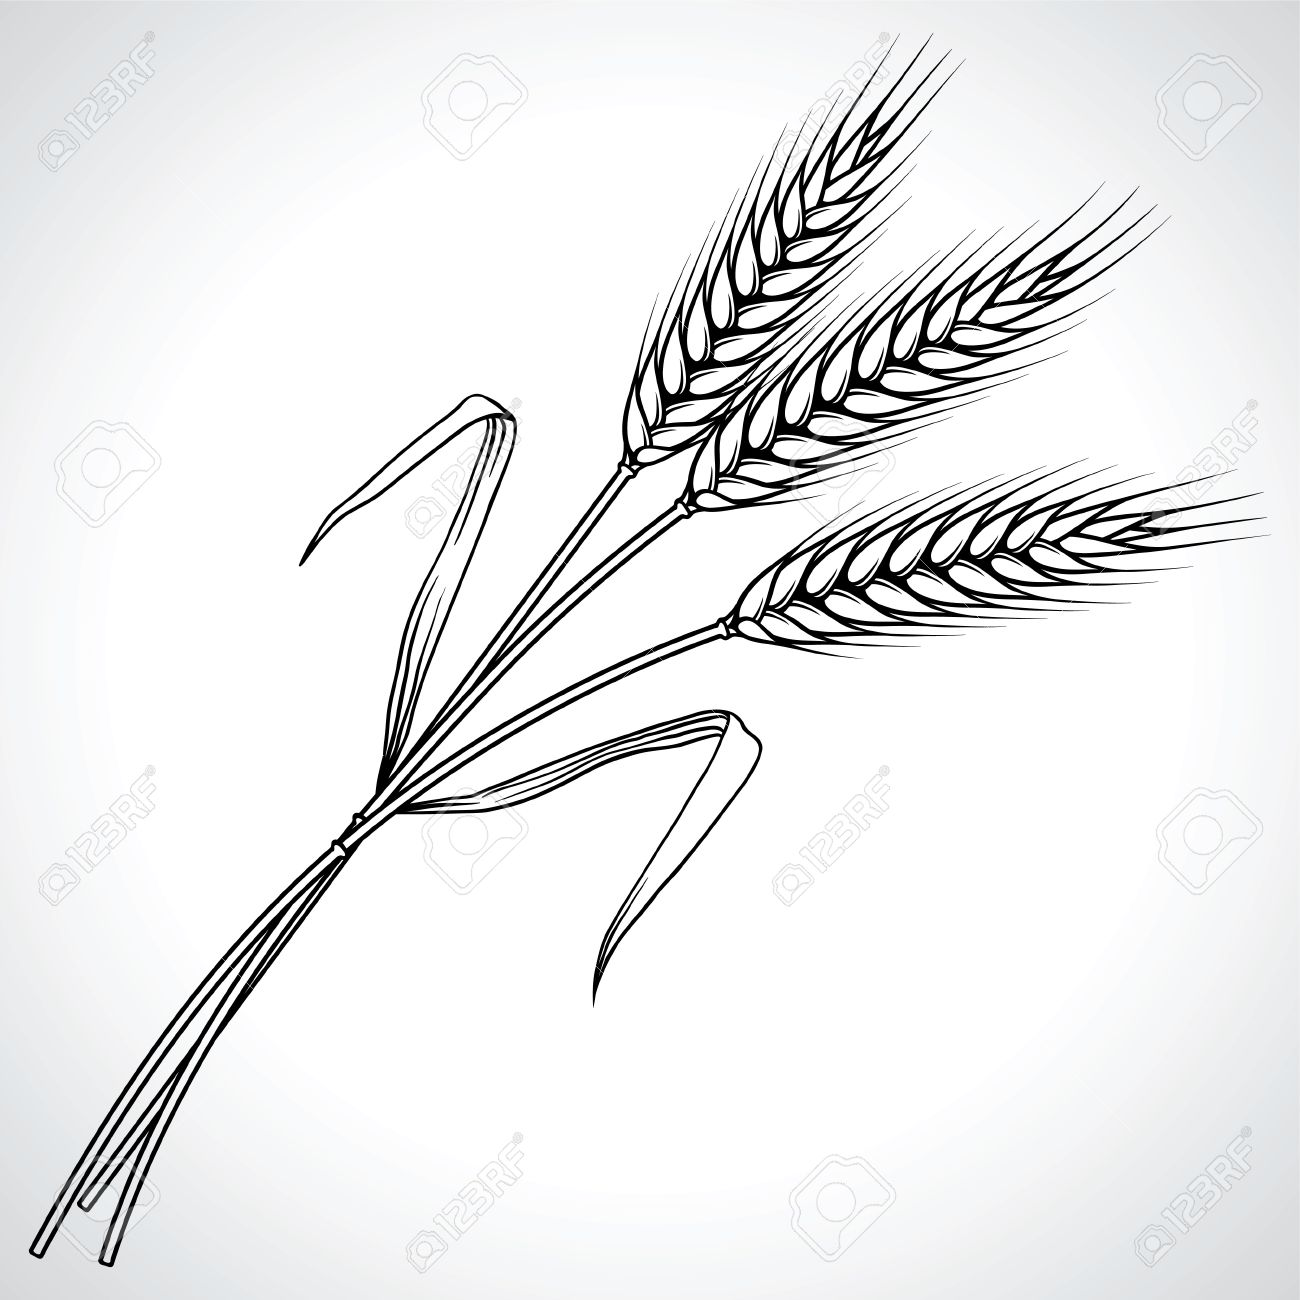 1300x1300 Ripe Black Wheat Ears Isolated Illustration Royalty Free Cliparts